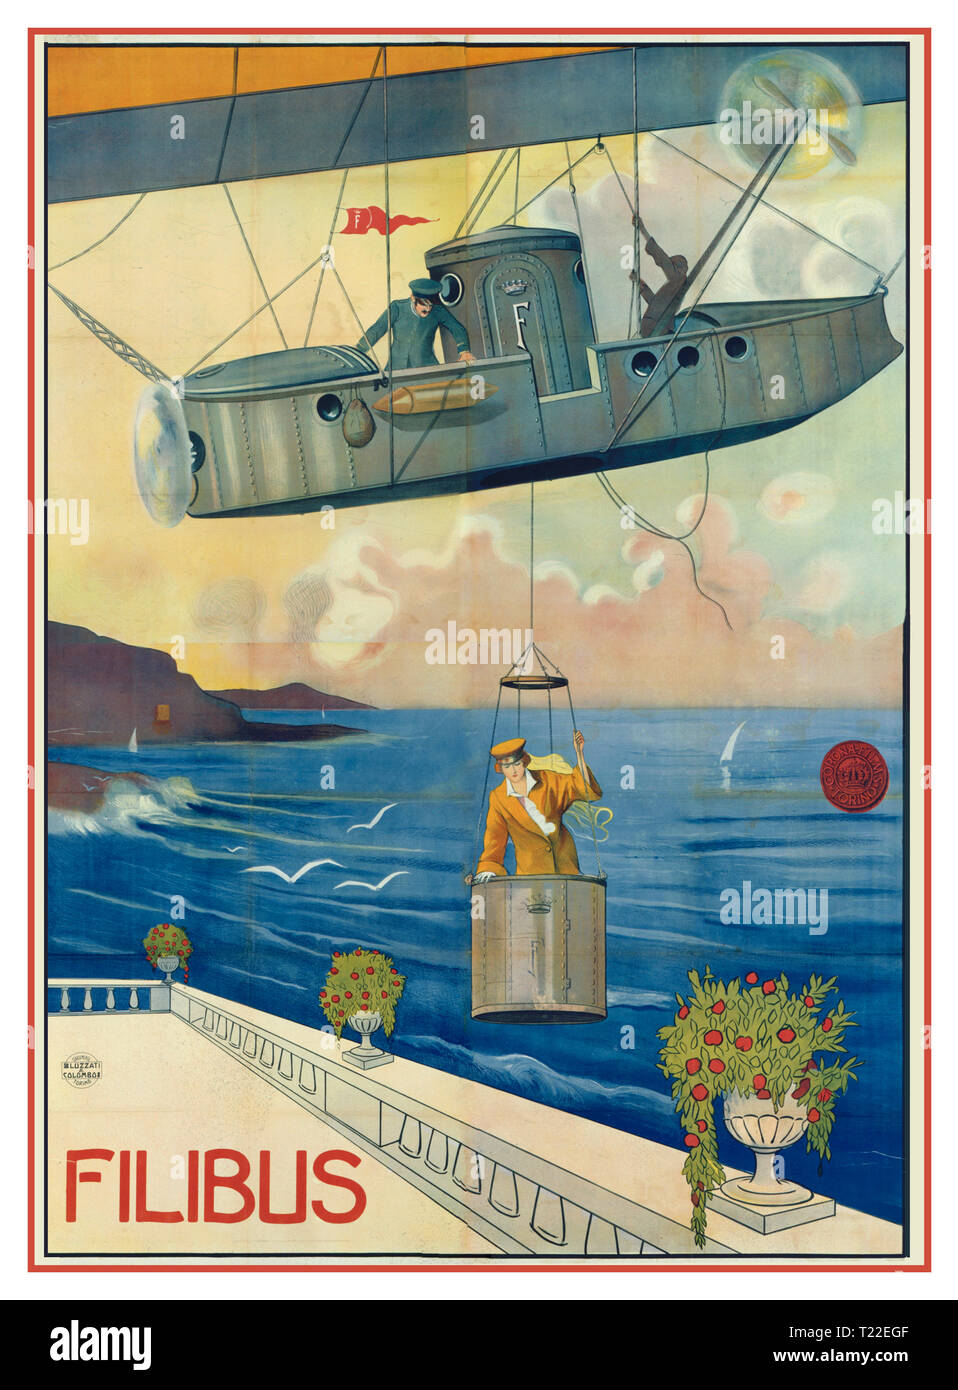 "FILIBUS Vintage 1900's Italian Movie Poster for the 1915 film ""Filibus""  (Corona Films, Italy) Filibus is a 1915 Italian silent adventure film directed by Mario Roncoroni and written by Giovanni Bertinetti. The film features Cristina Ruspoli as the title character, a mysterious sky pirate who makes daring heists with her technologically advanced airship. March 1915 (Italy) - Stock Image"